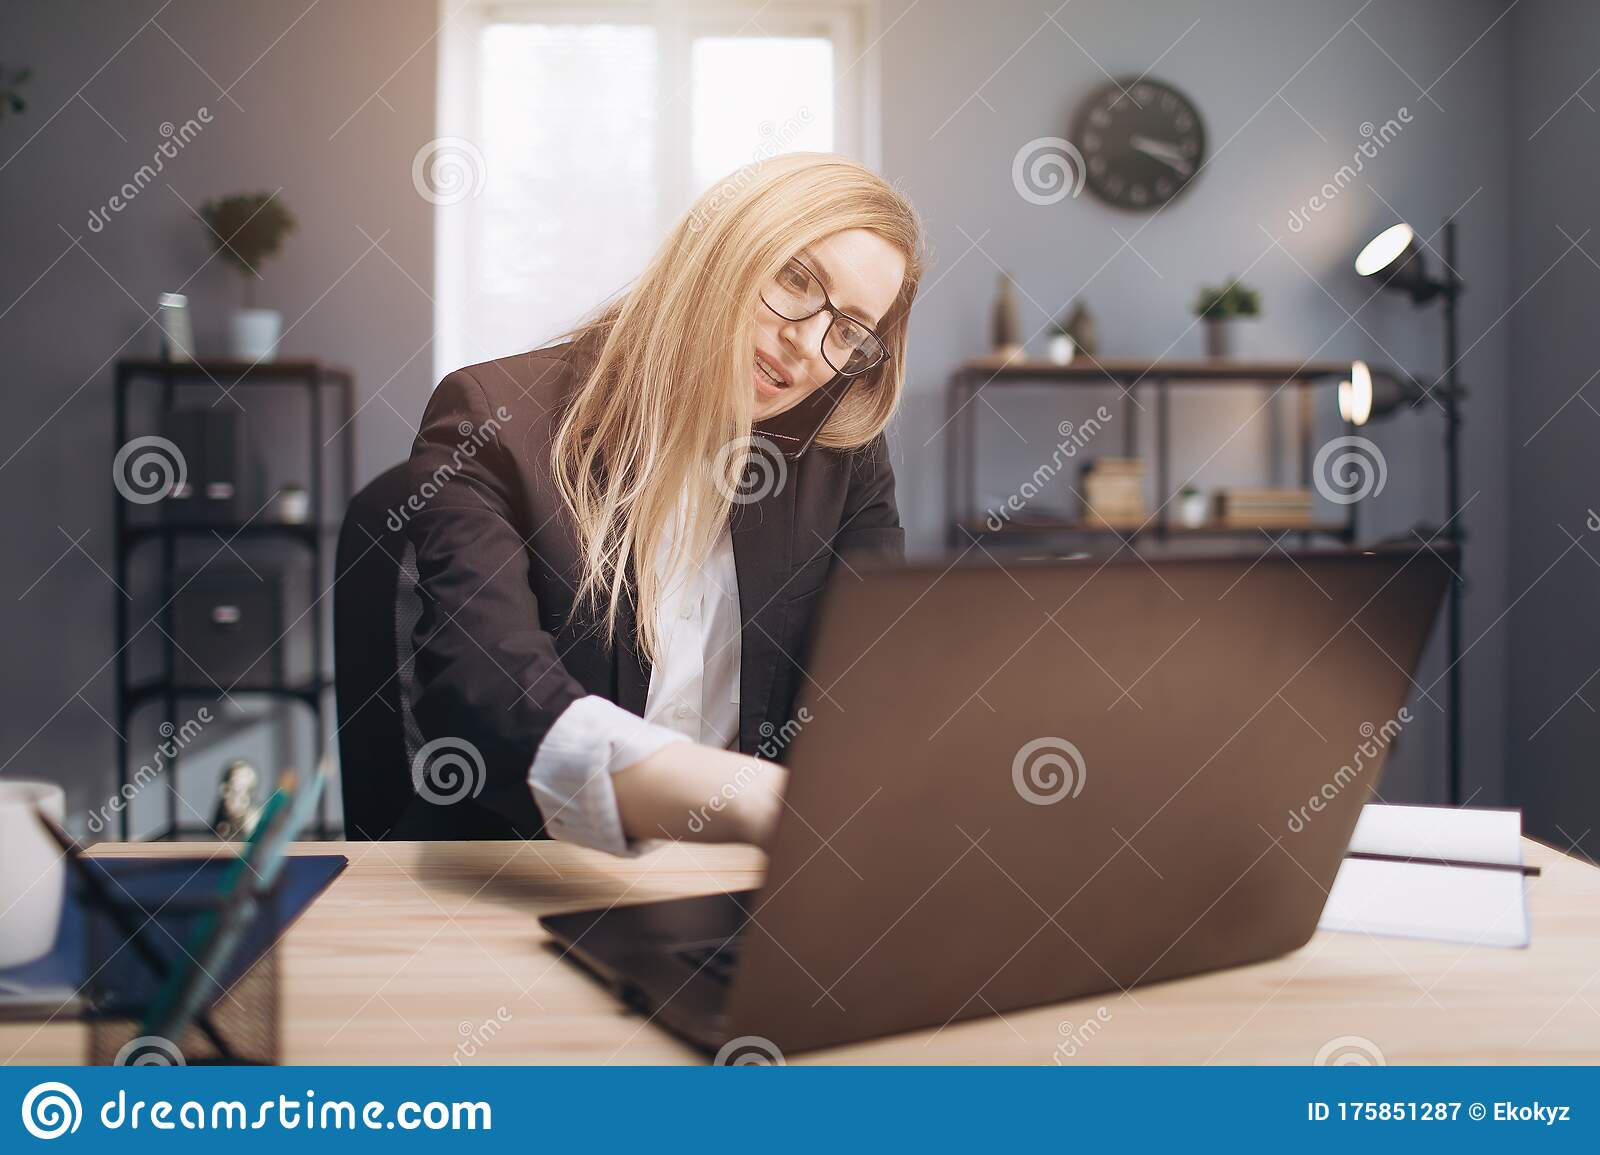 Woman Having Phone Conversation While Working On Laptop Stock Image Image Of Elegant Occupation 175851287